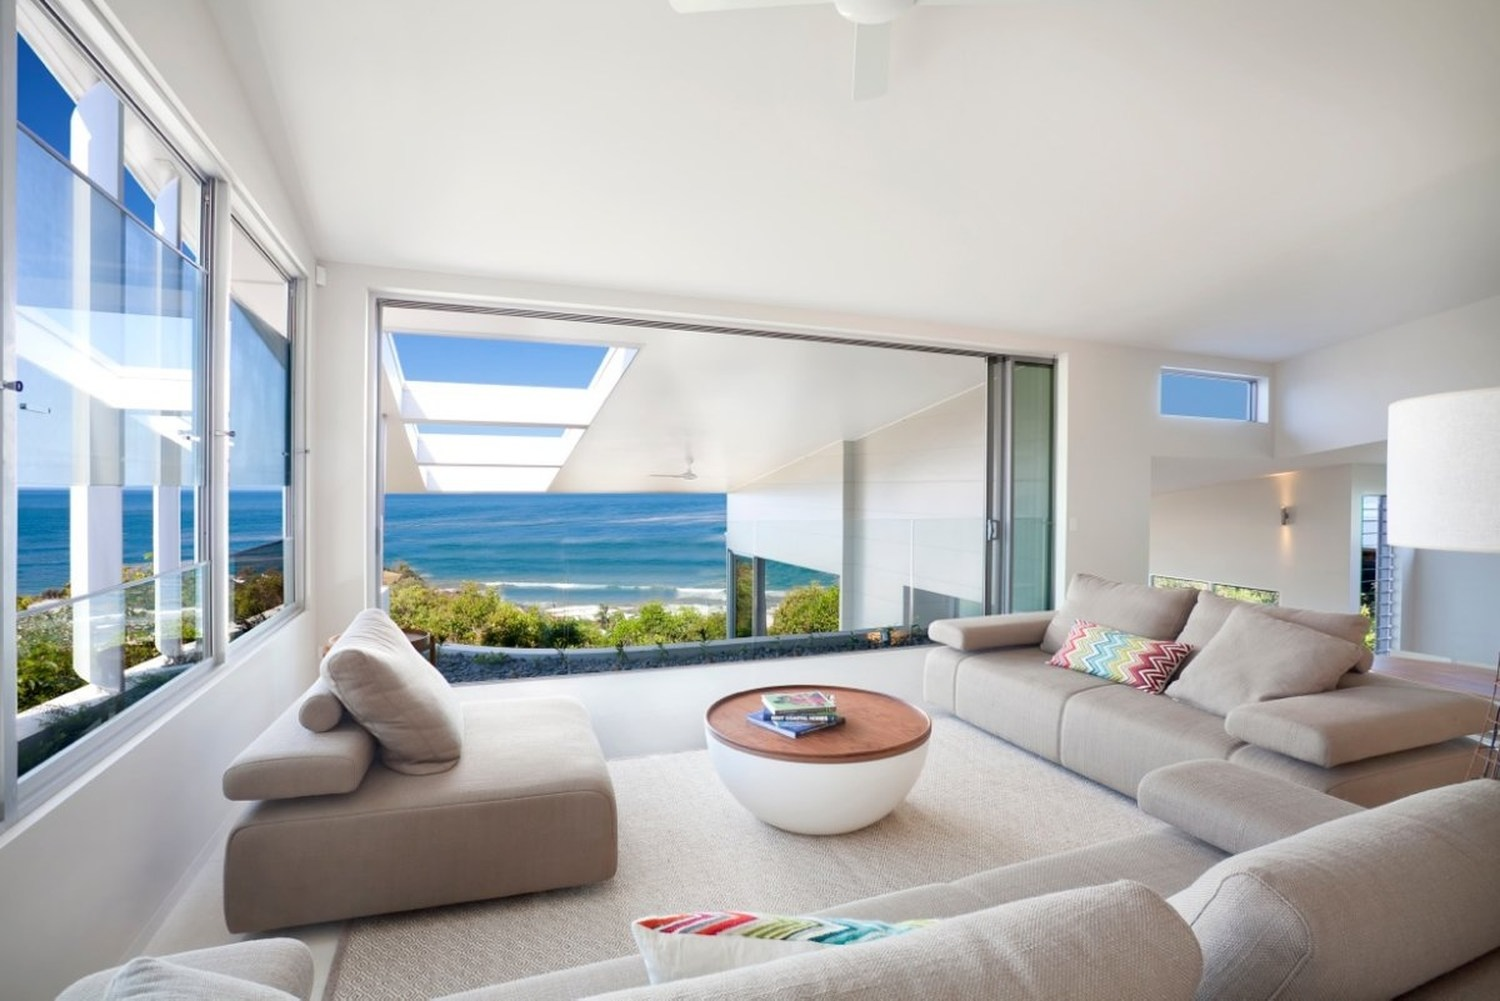 Coolum bays beach house by aboda design group karmatrendz - Beach home design ...